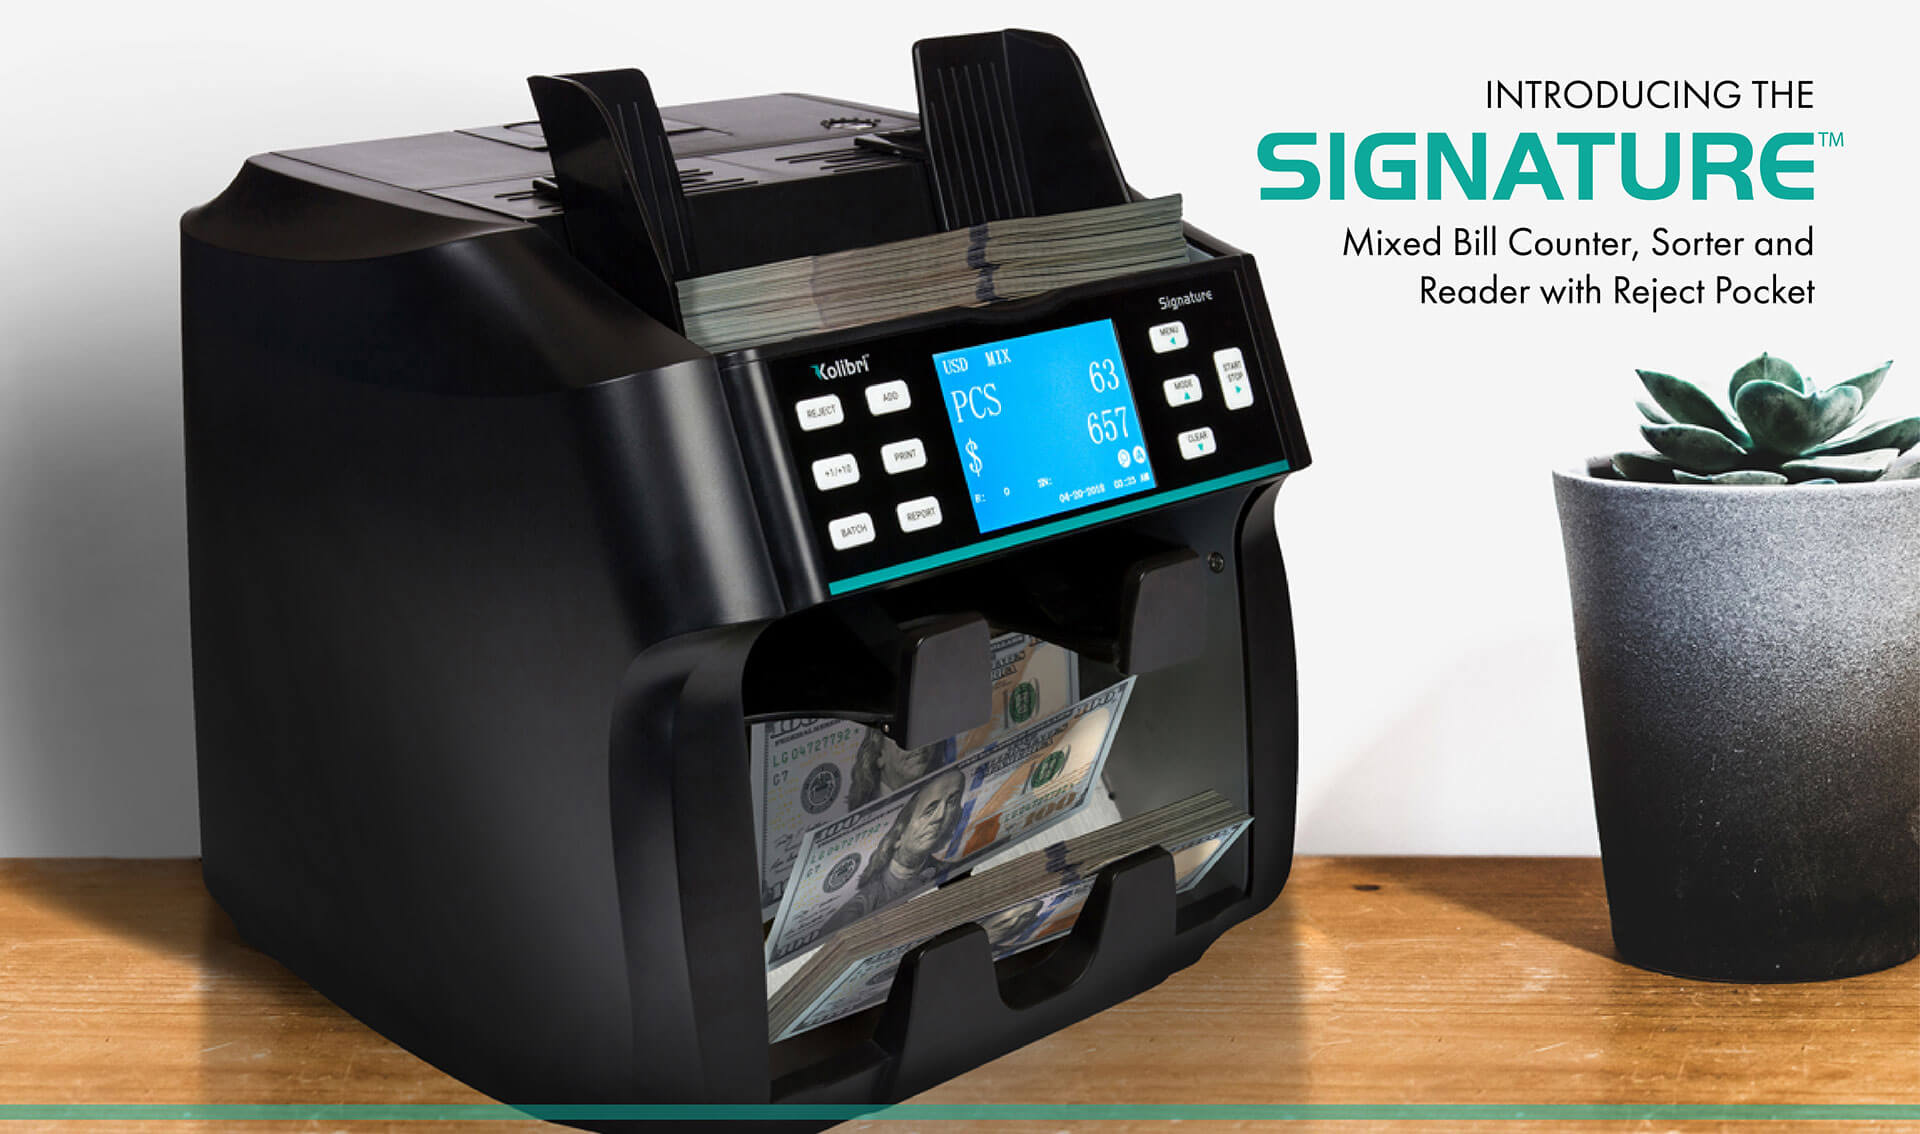 2-Pocket Business-Grade Mixed Bill Counter And Sorter With Counterfeit Detection